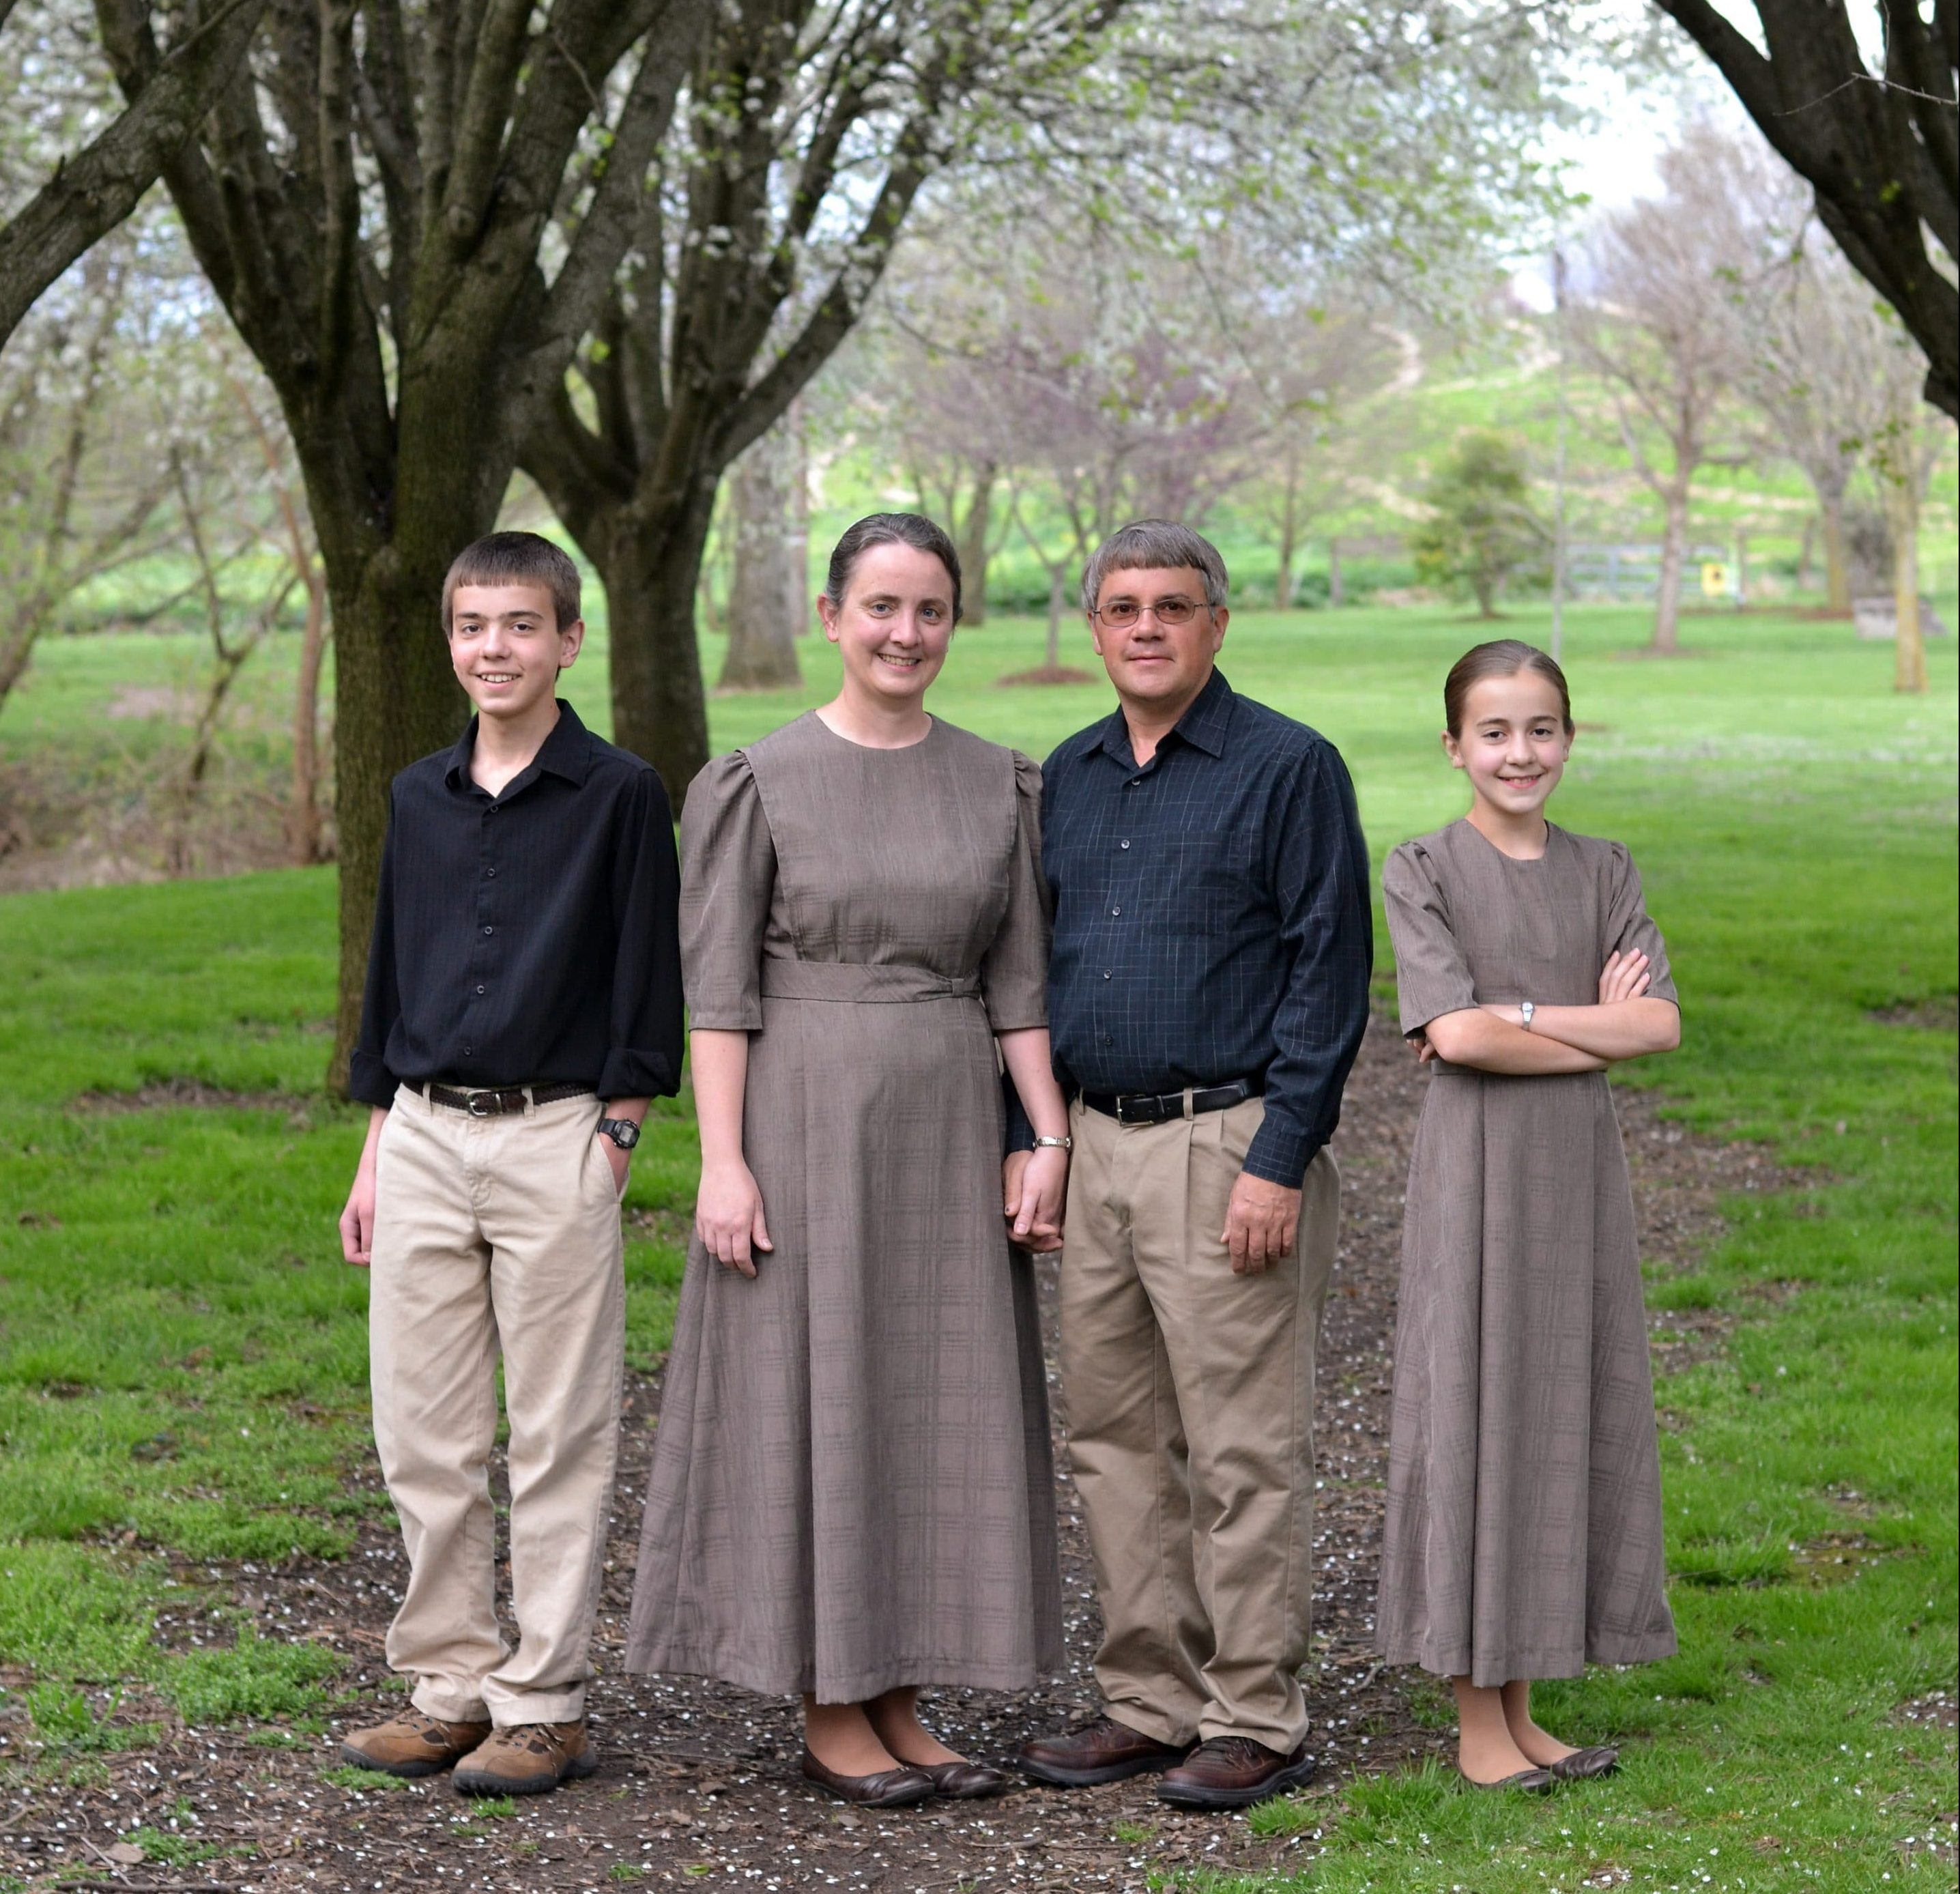 Owners, Daryl and Rosetta Gingerich, with their children, Ryan and Heidi.